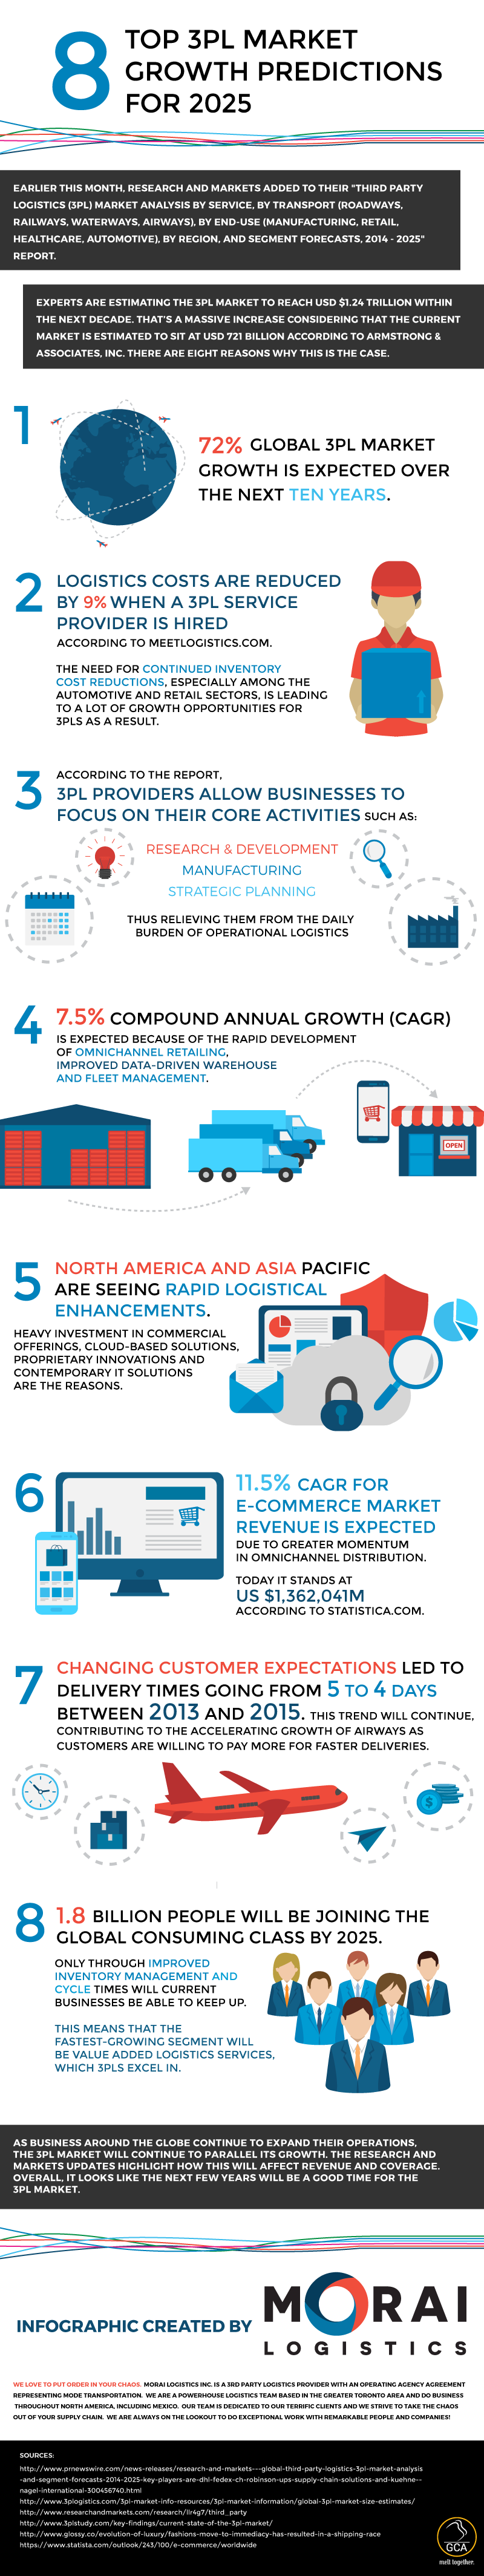 morai-logistics-infographic-8-3pl-market-growth-predictions-2025